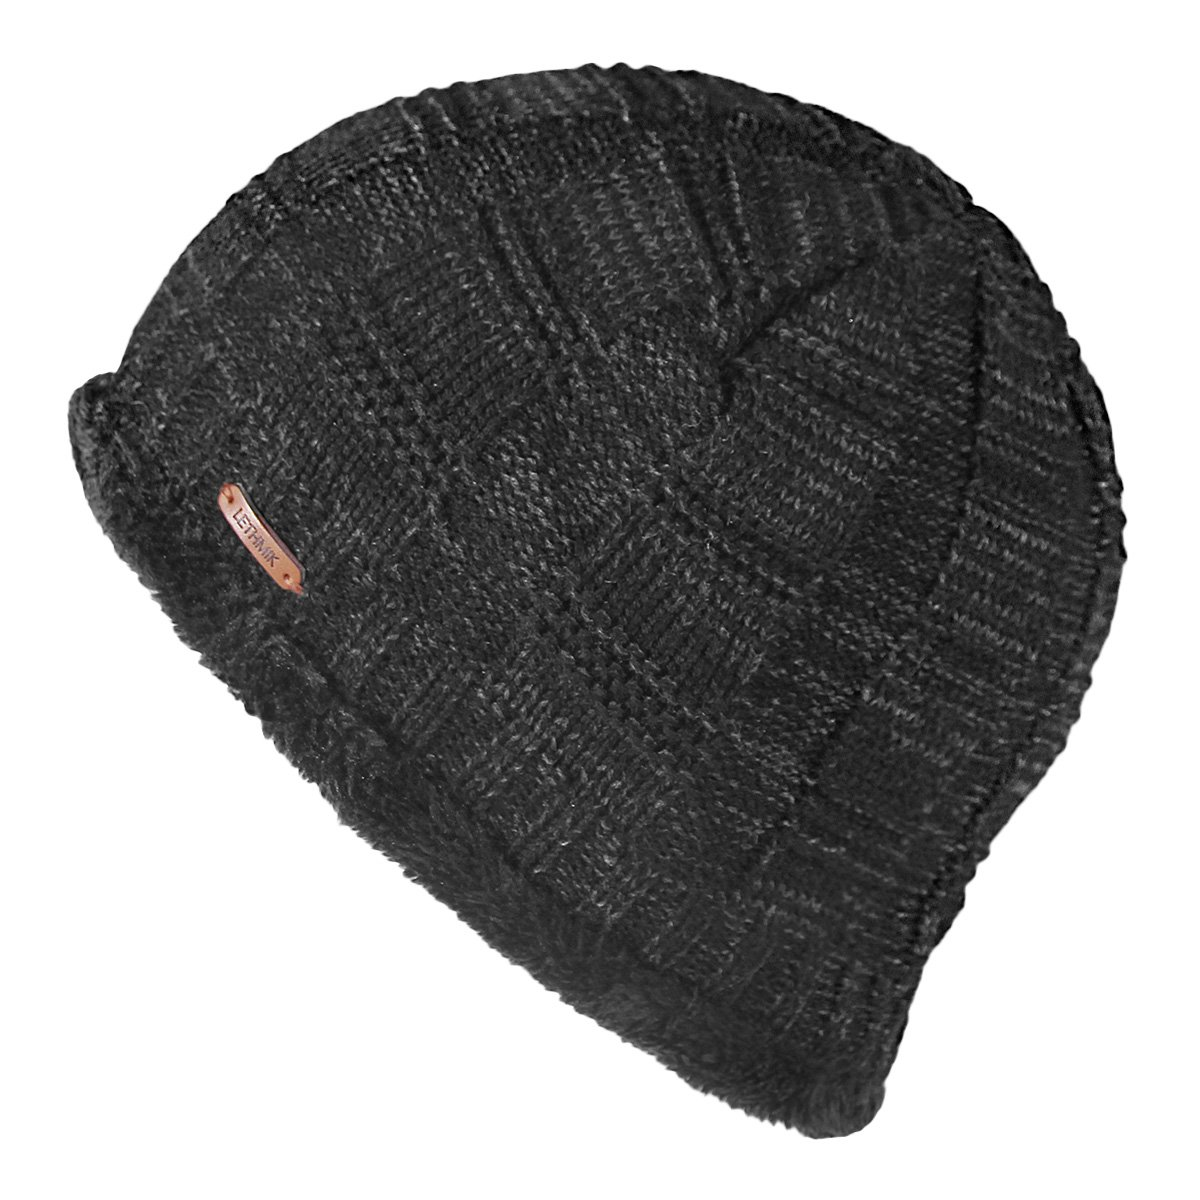 LETHMIK Unique Ribbed Knit Beanie Warm Thick Fleece Lined Hat Mens Winter  Skull Cap Black at Amazon Men s Clothing store  a268905af301